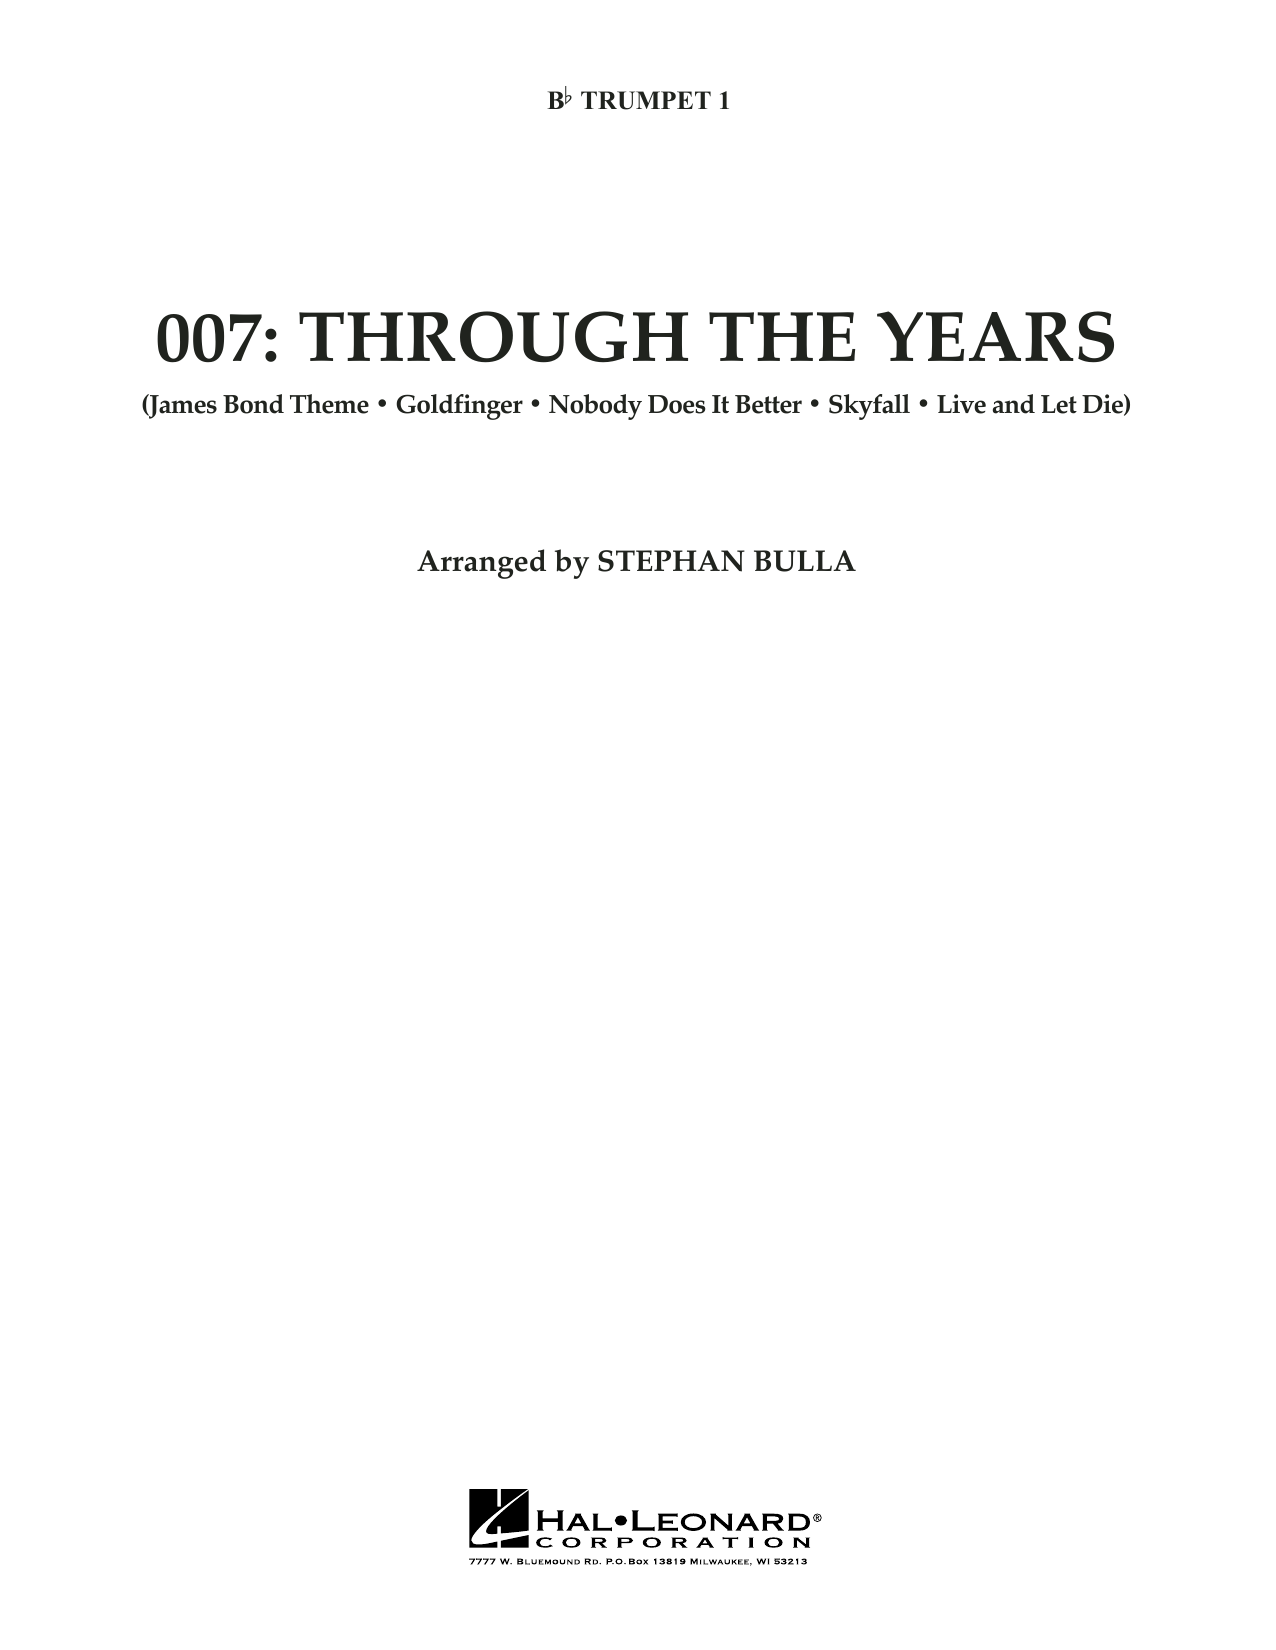 007: Through The Years - Bb Trumpet 1 (Orchestra)